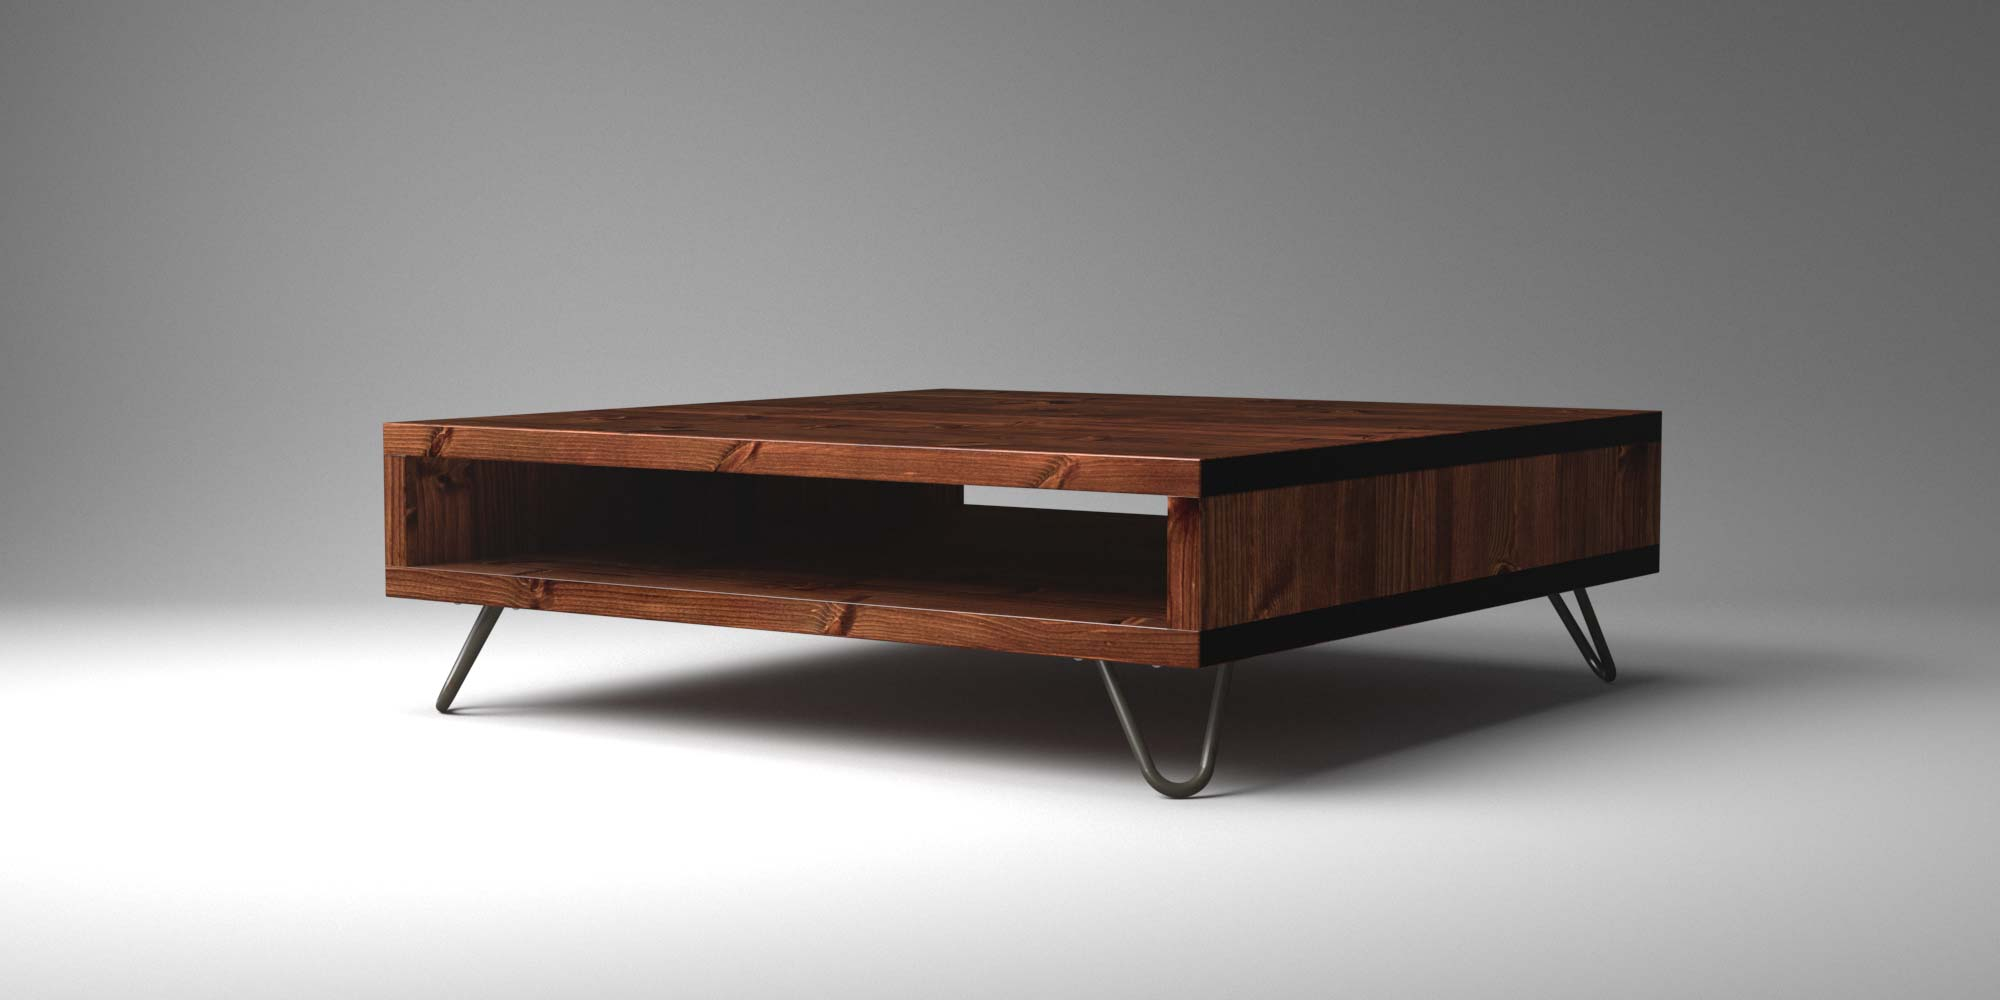 Lowboy Box Coffee Table With Hairpin Legs Blue Island Home throughout measurements 2000 X 1000